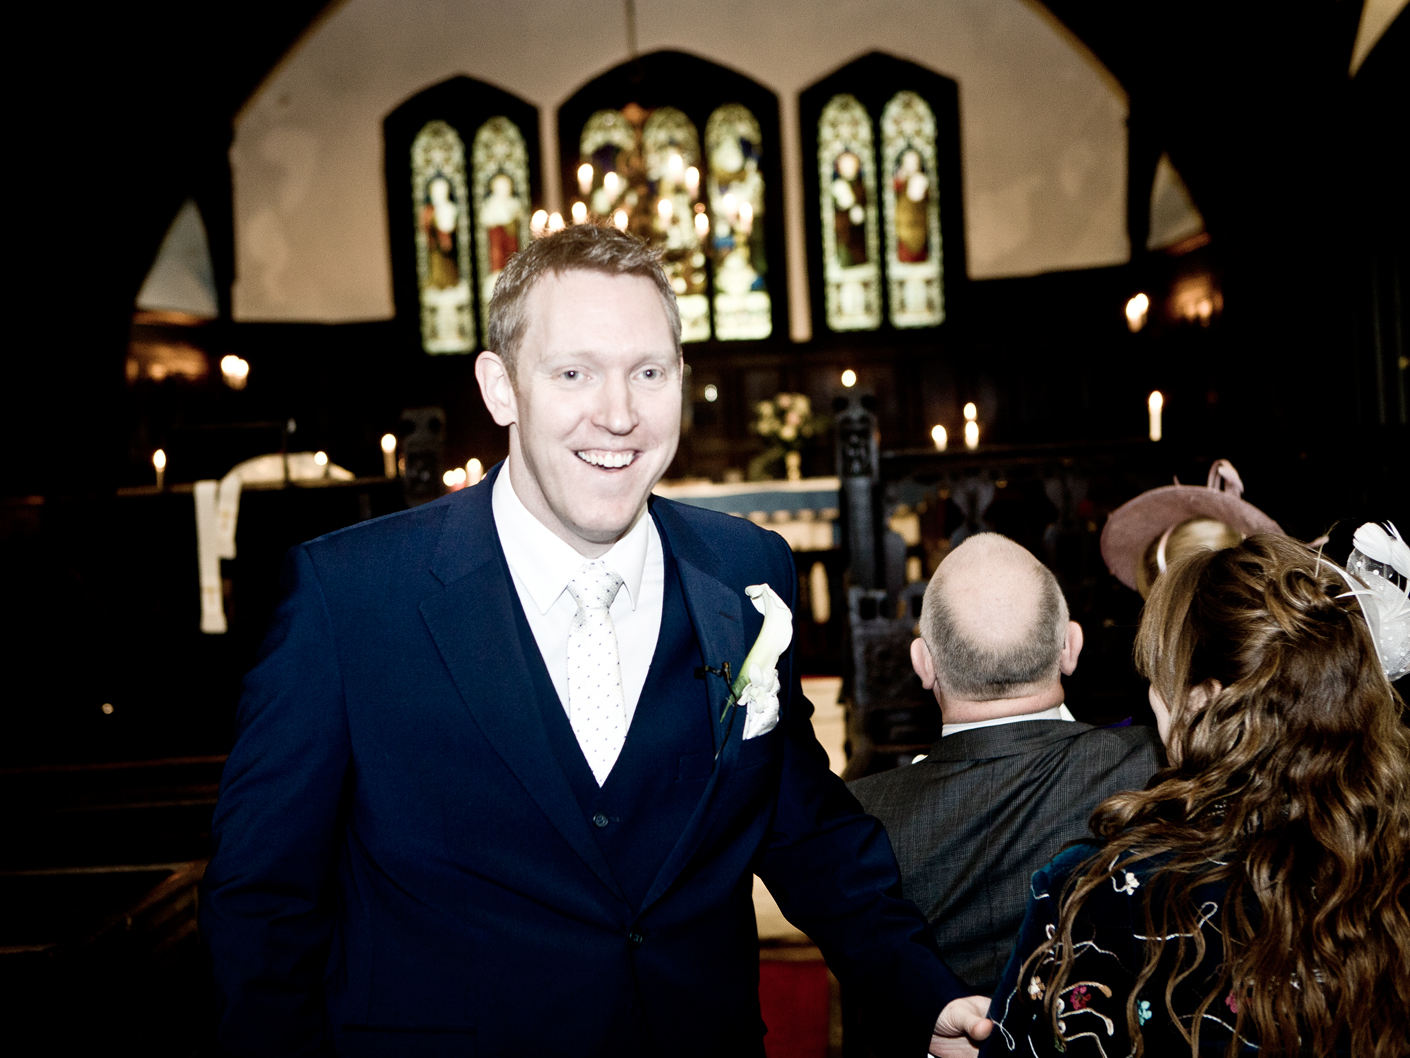 wedding-photography-of-the-groom-at-the-ceremony-in-cheshire